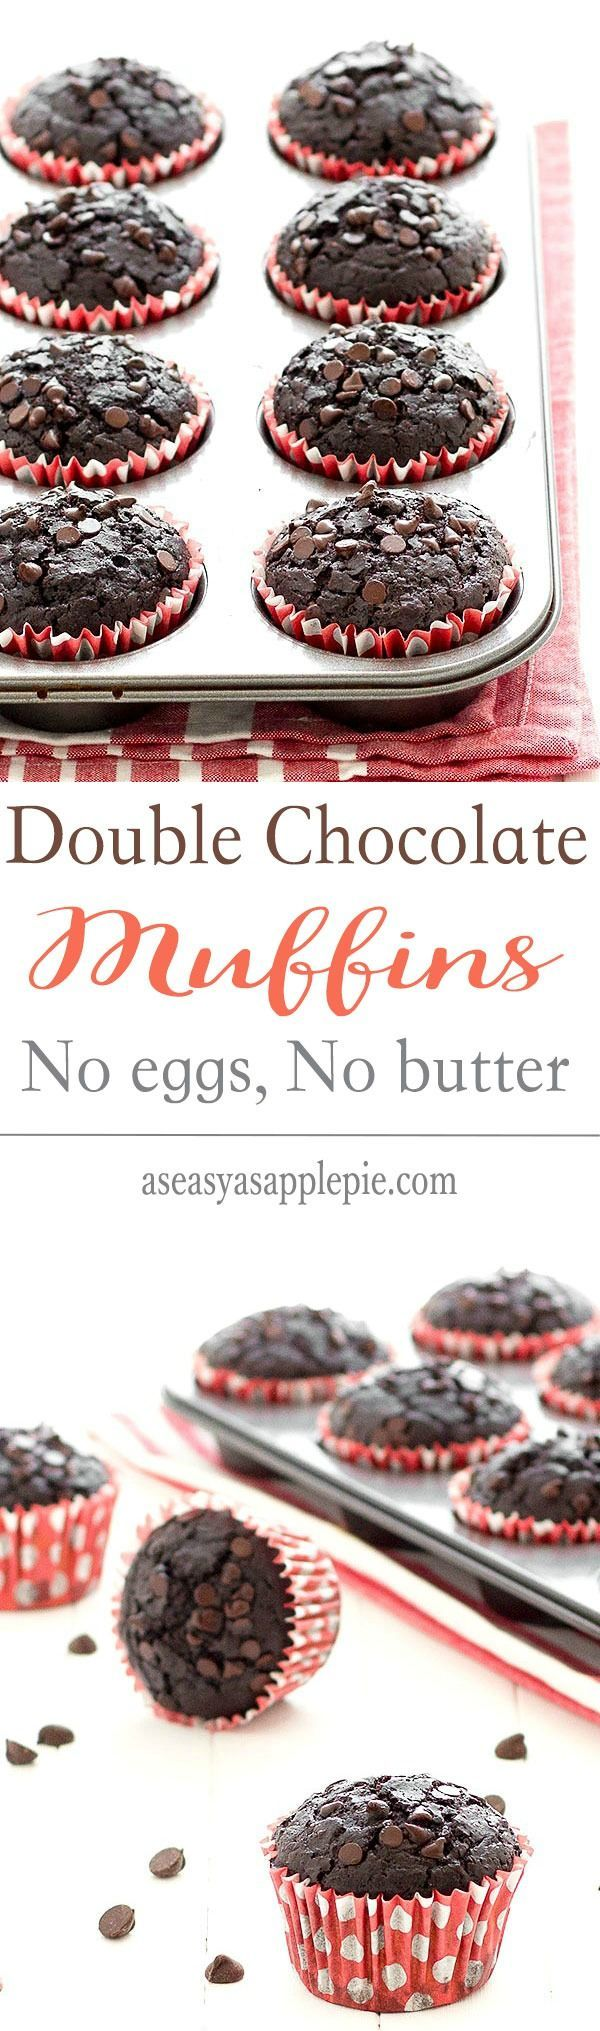 These double chocolate muffins have no eggs and no butter. They are chocolatey, super moist, with a very tender crumb.